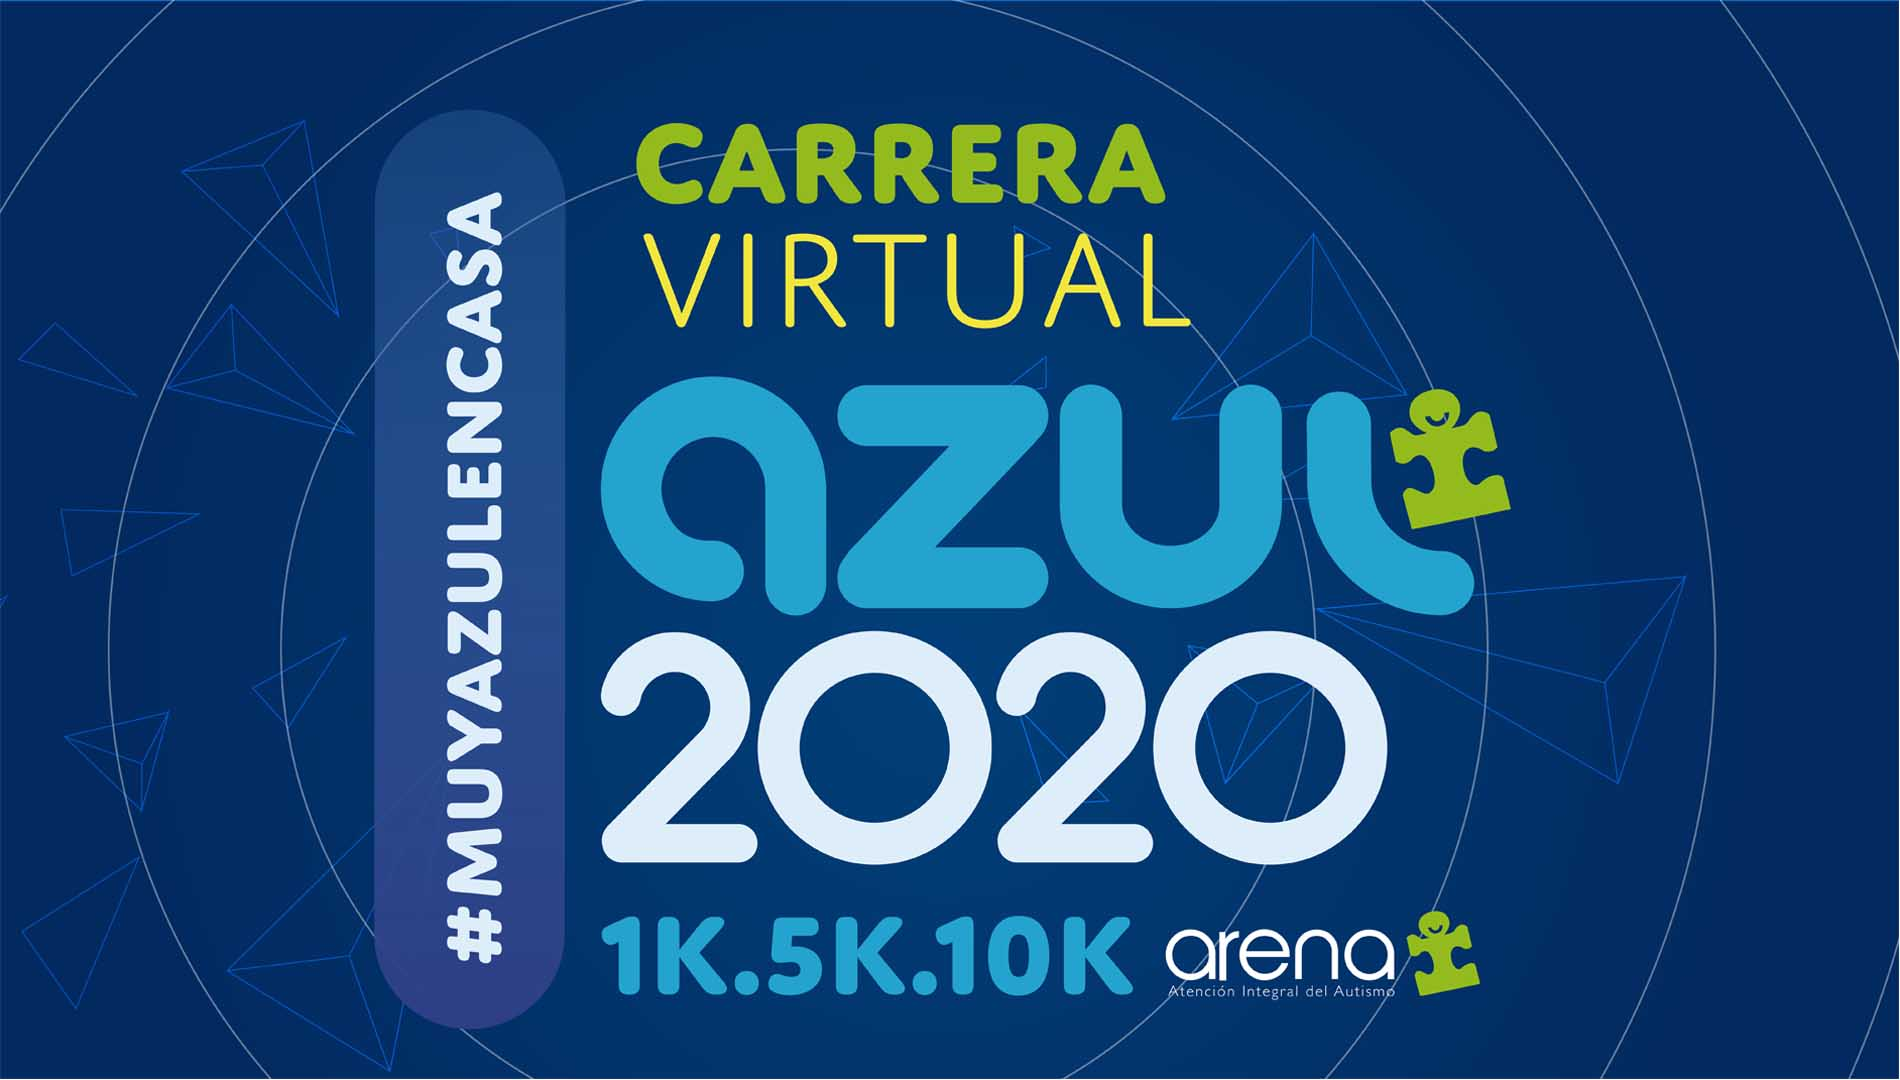 CARRERA VIRTUAL AZUL 2020 1K 5K 10K